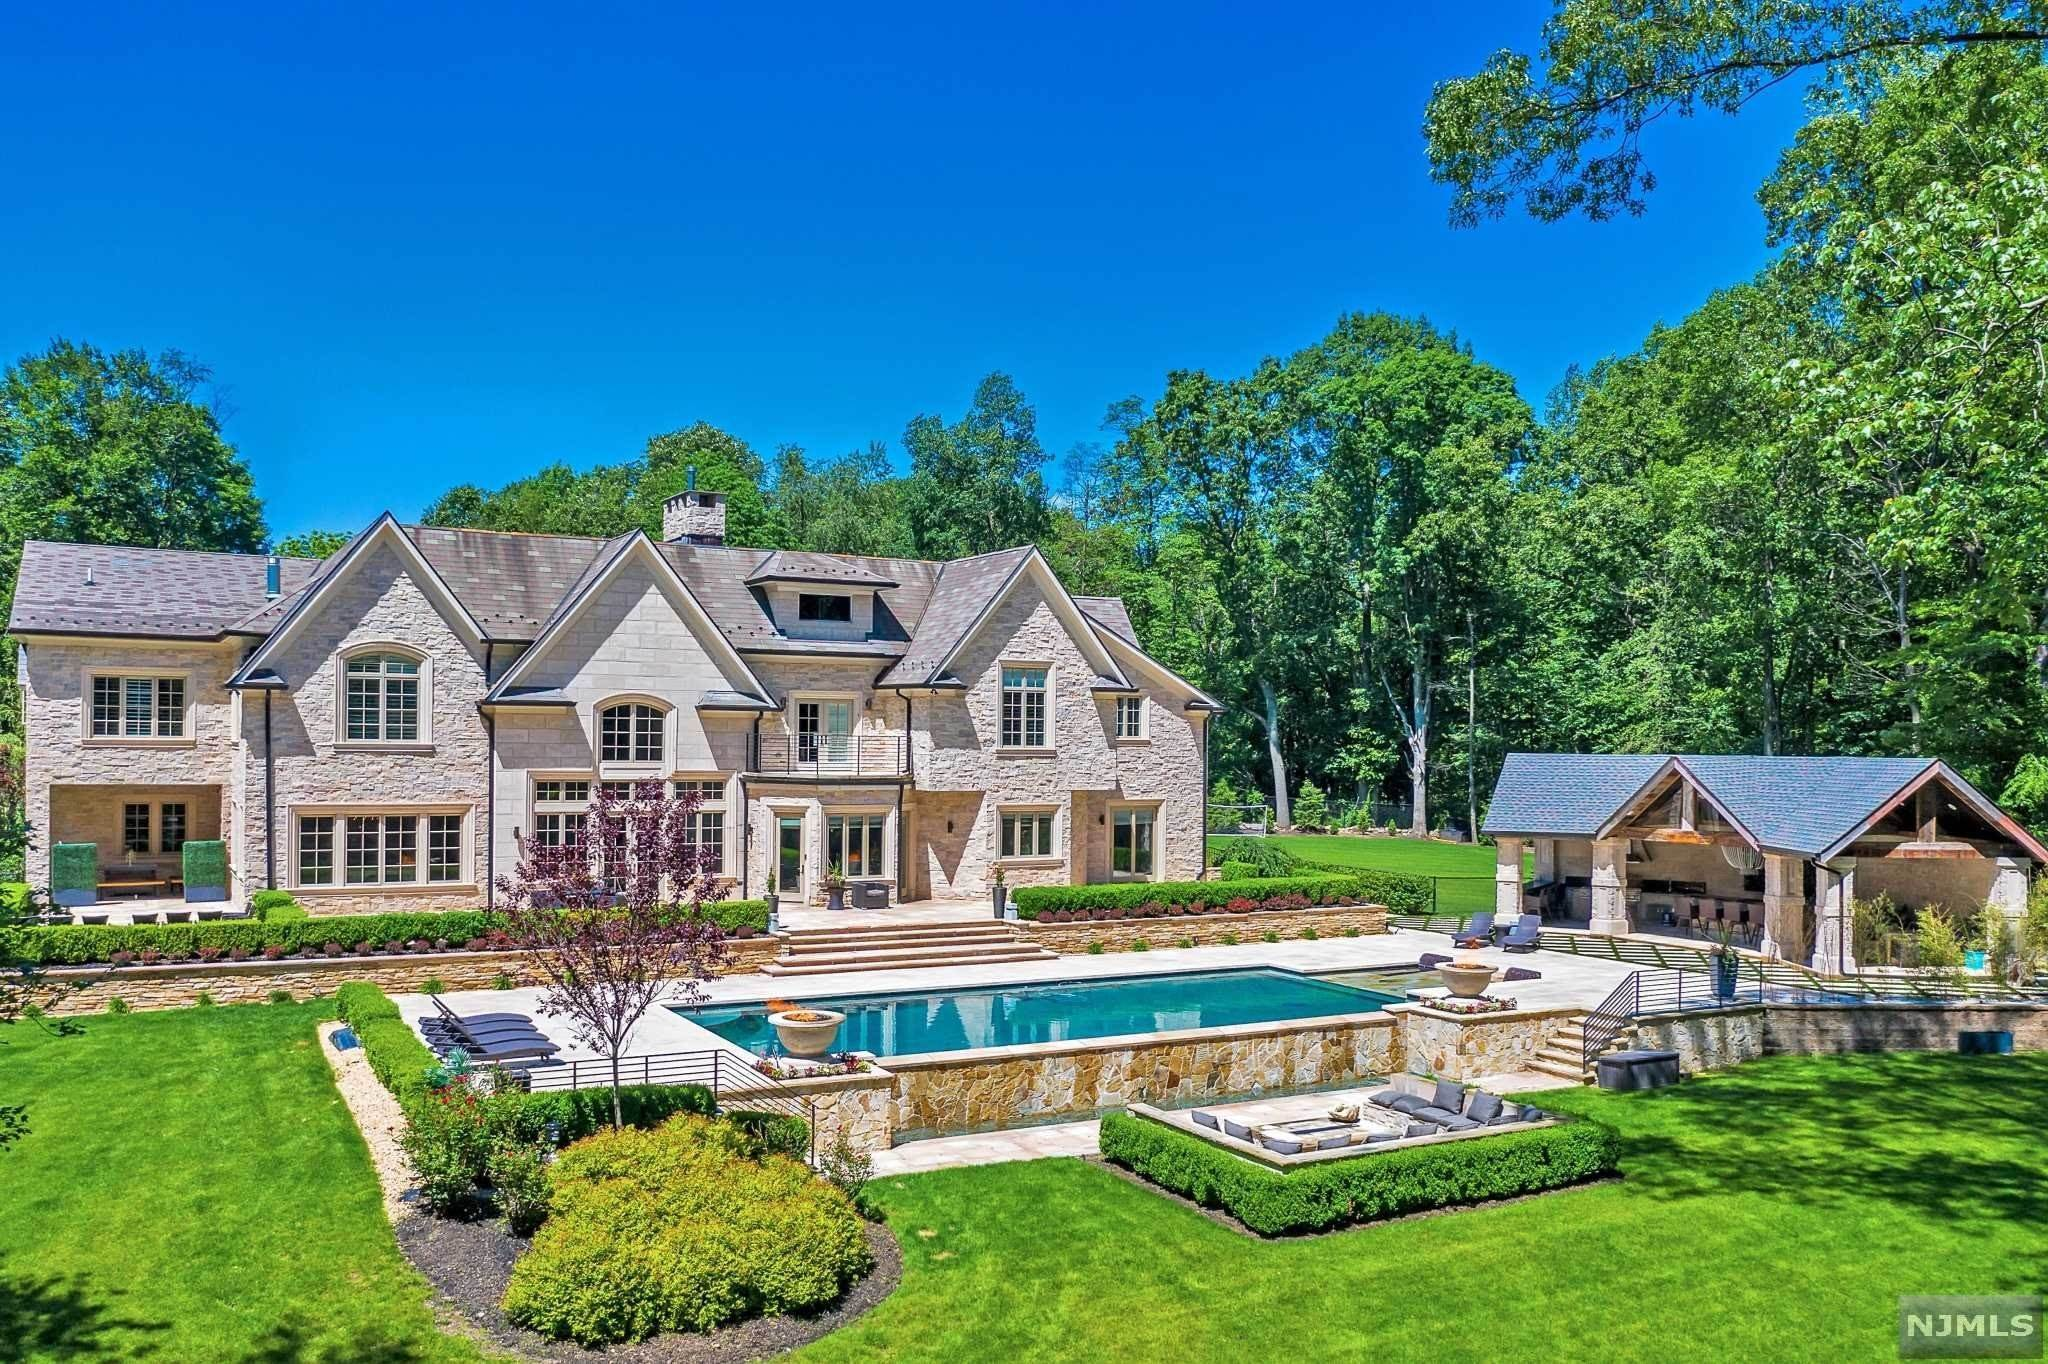 Single Family Home for Sale at 1 Scheffler Drive Saddle River, New Jersey, 07458 United States